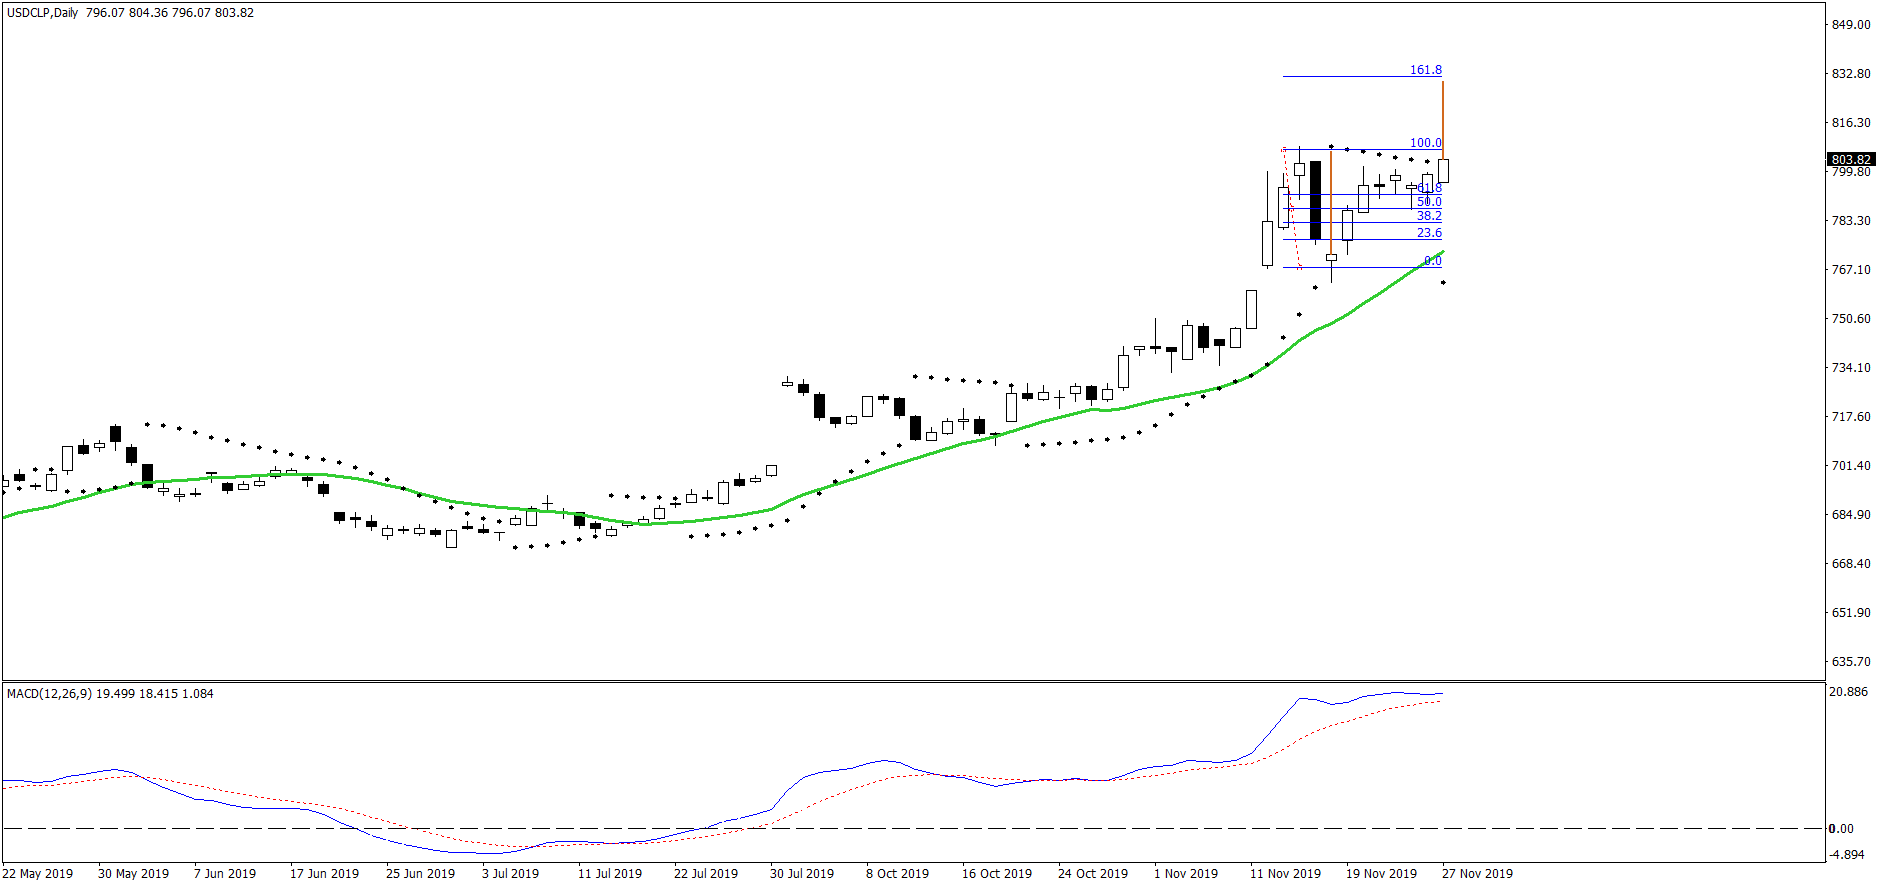 3830_usdclpdailyfiguraup.png